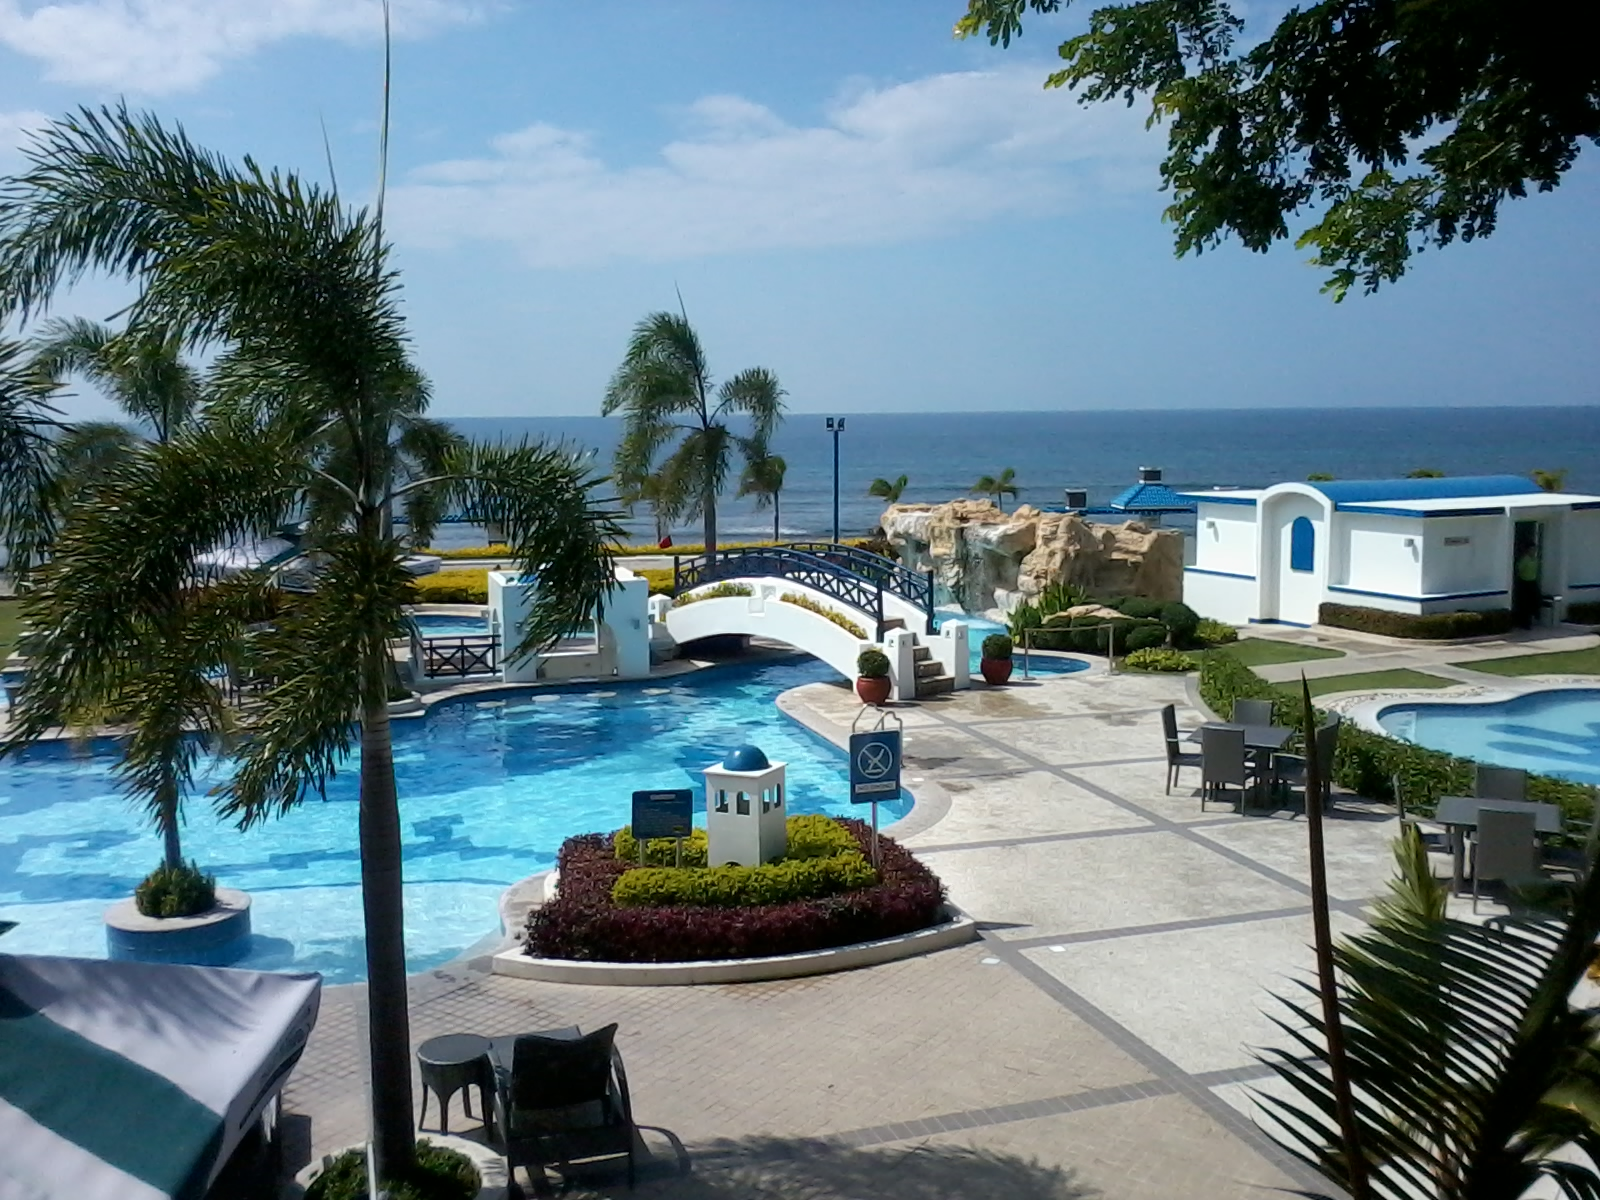 thunderbird resort poro point la union